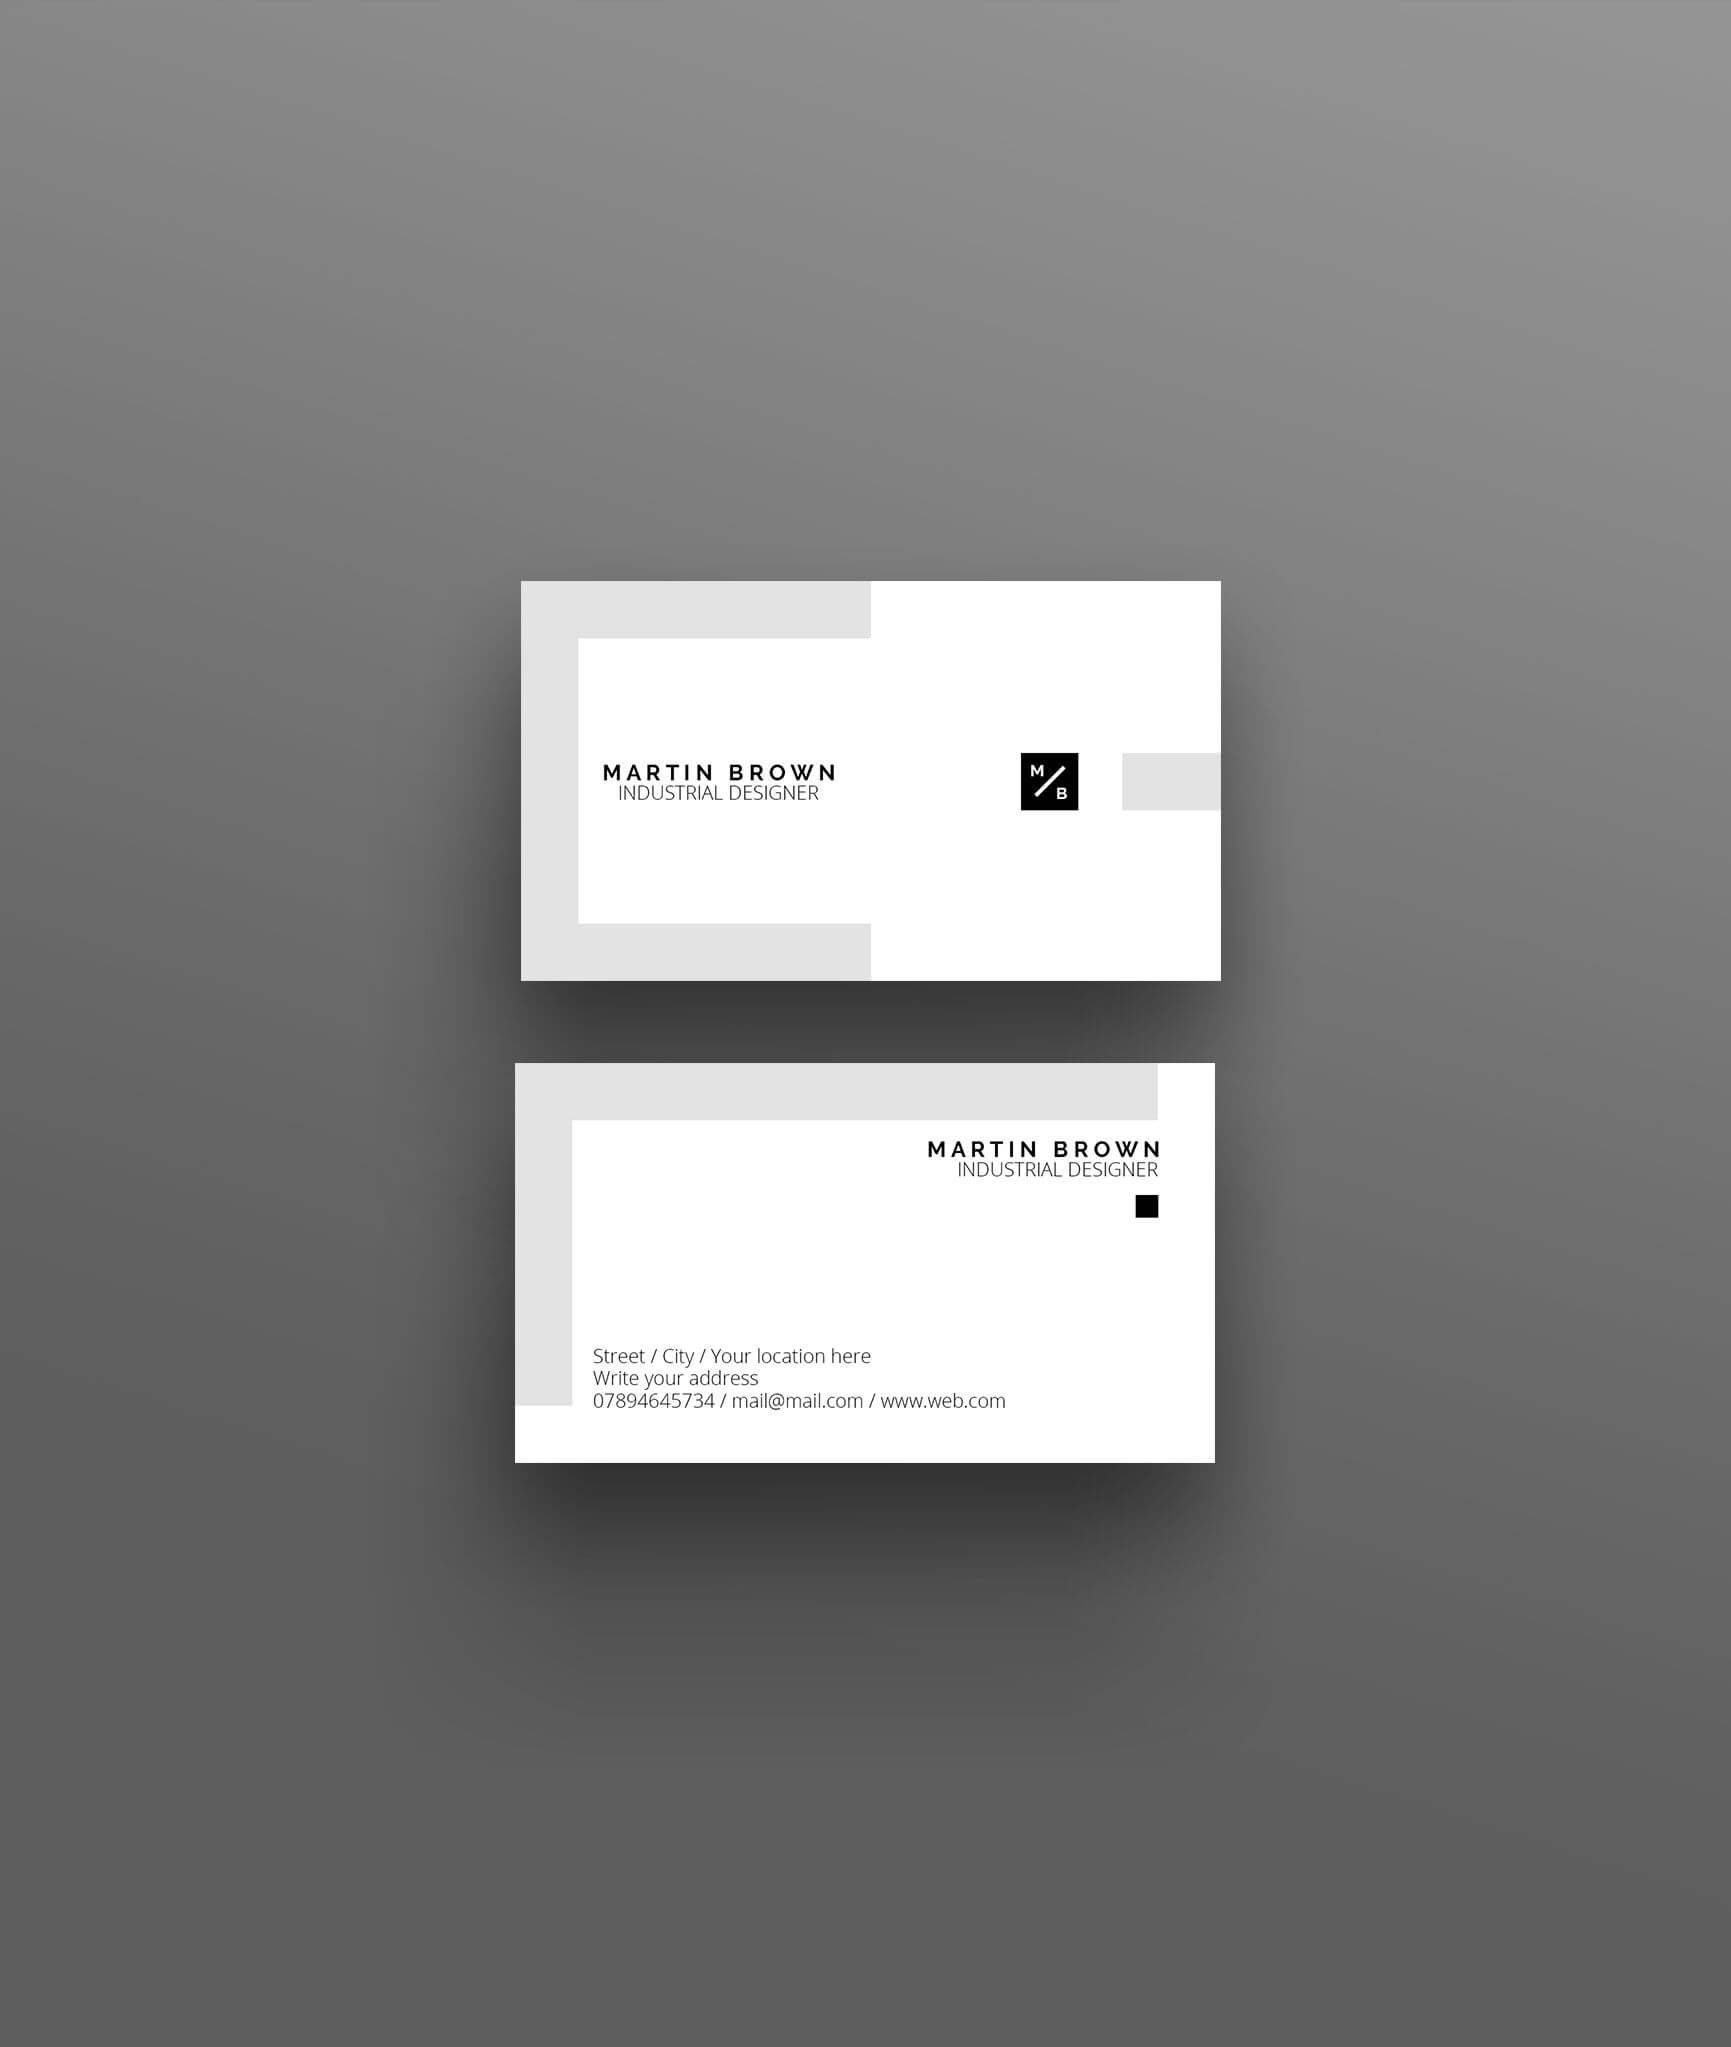 Business Card Template For Adobe Photoshop / Psd File In Photoshop Name Card Template